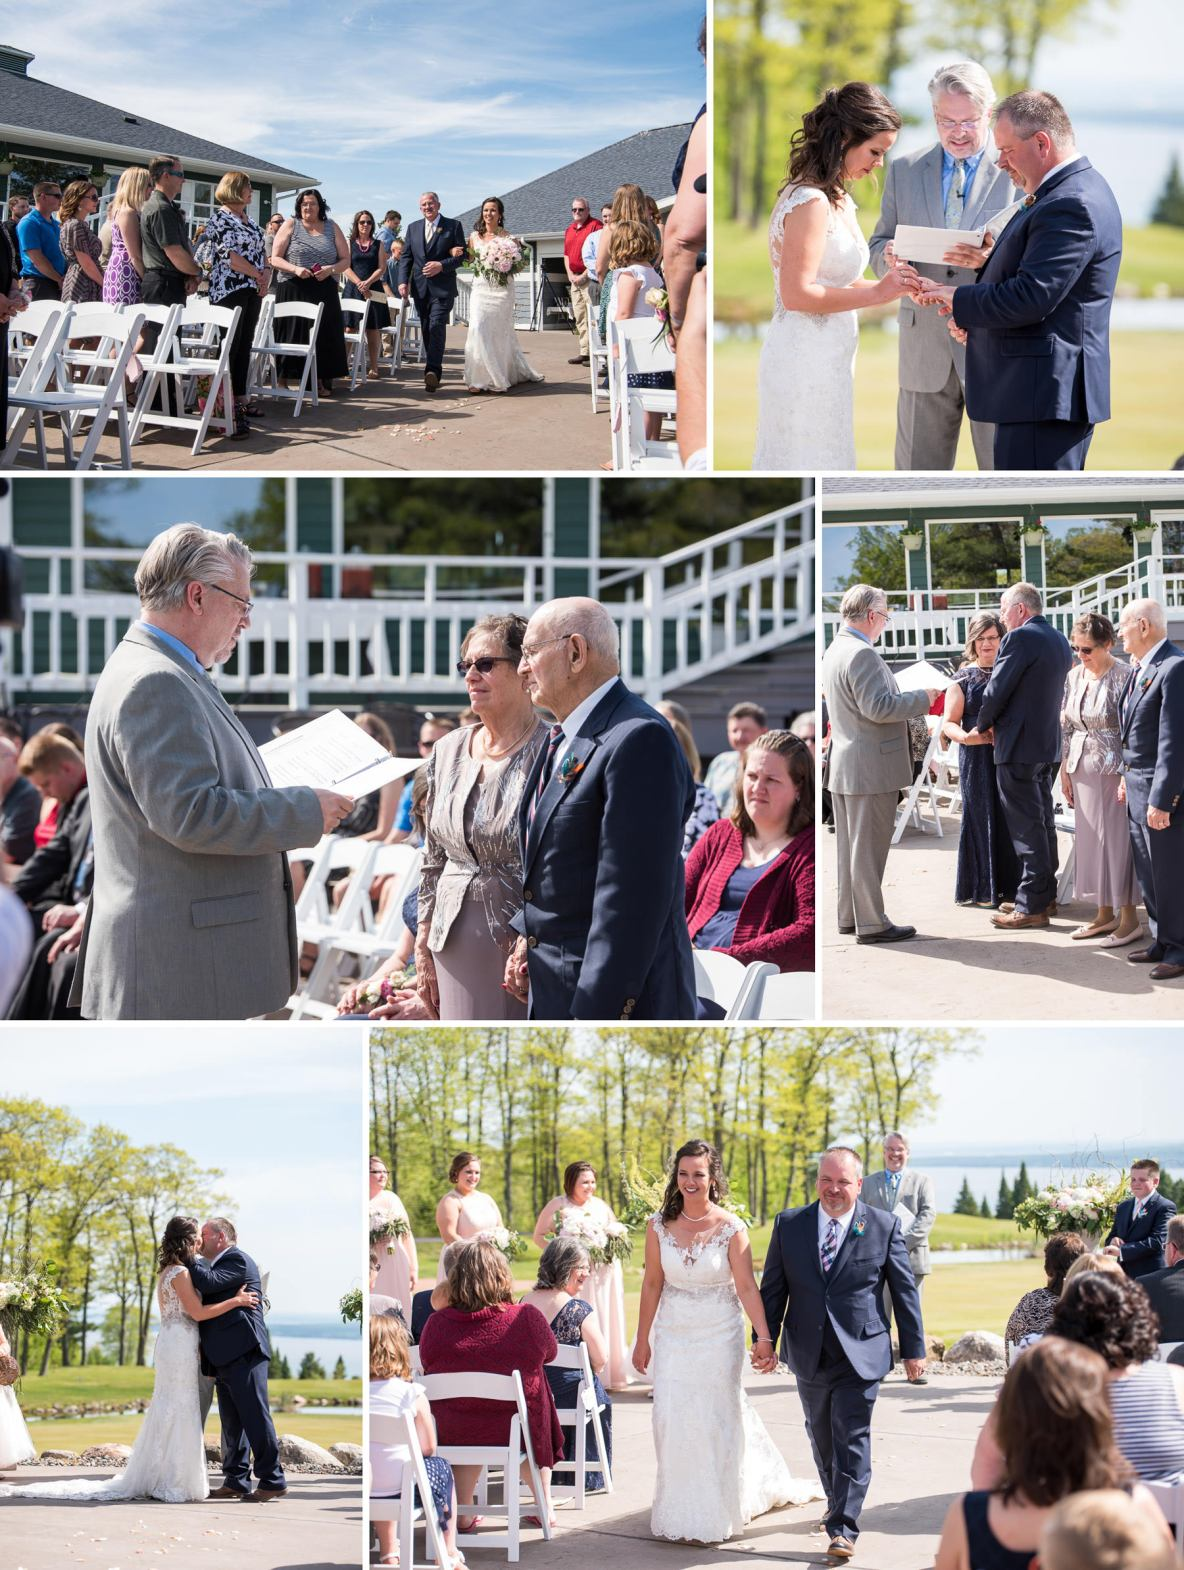 Photos of the outdoor ceremony in Bayfield, WI.